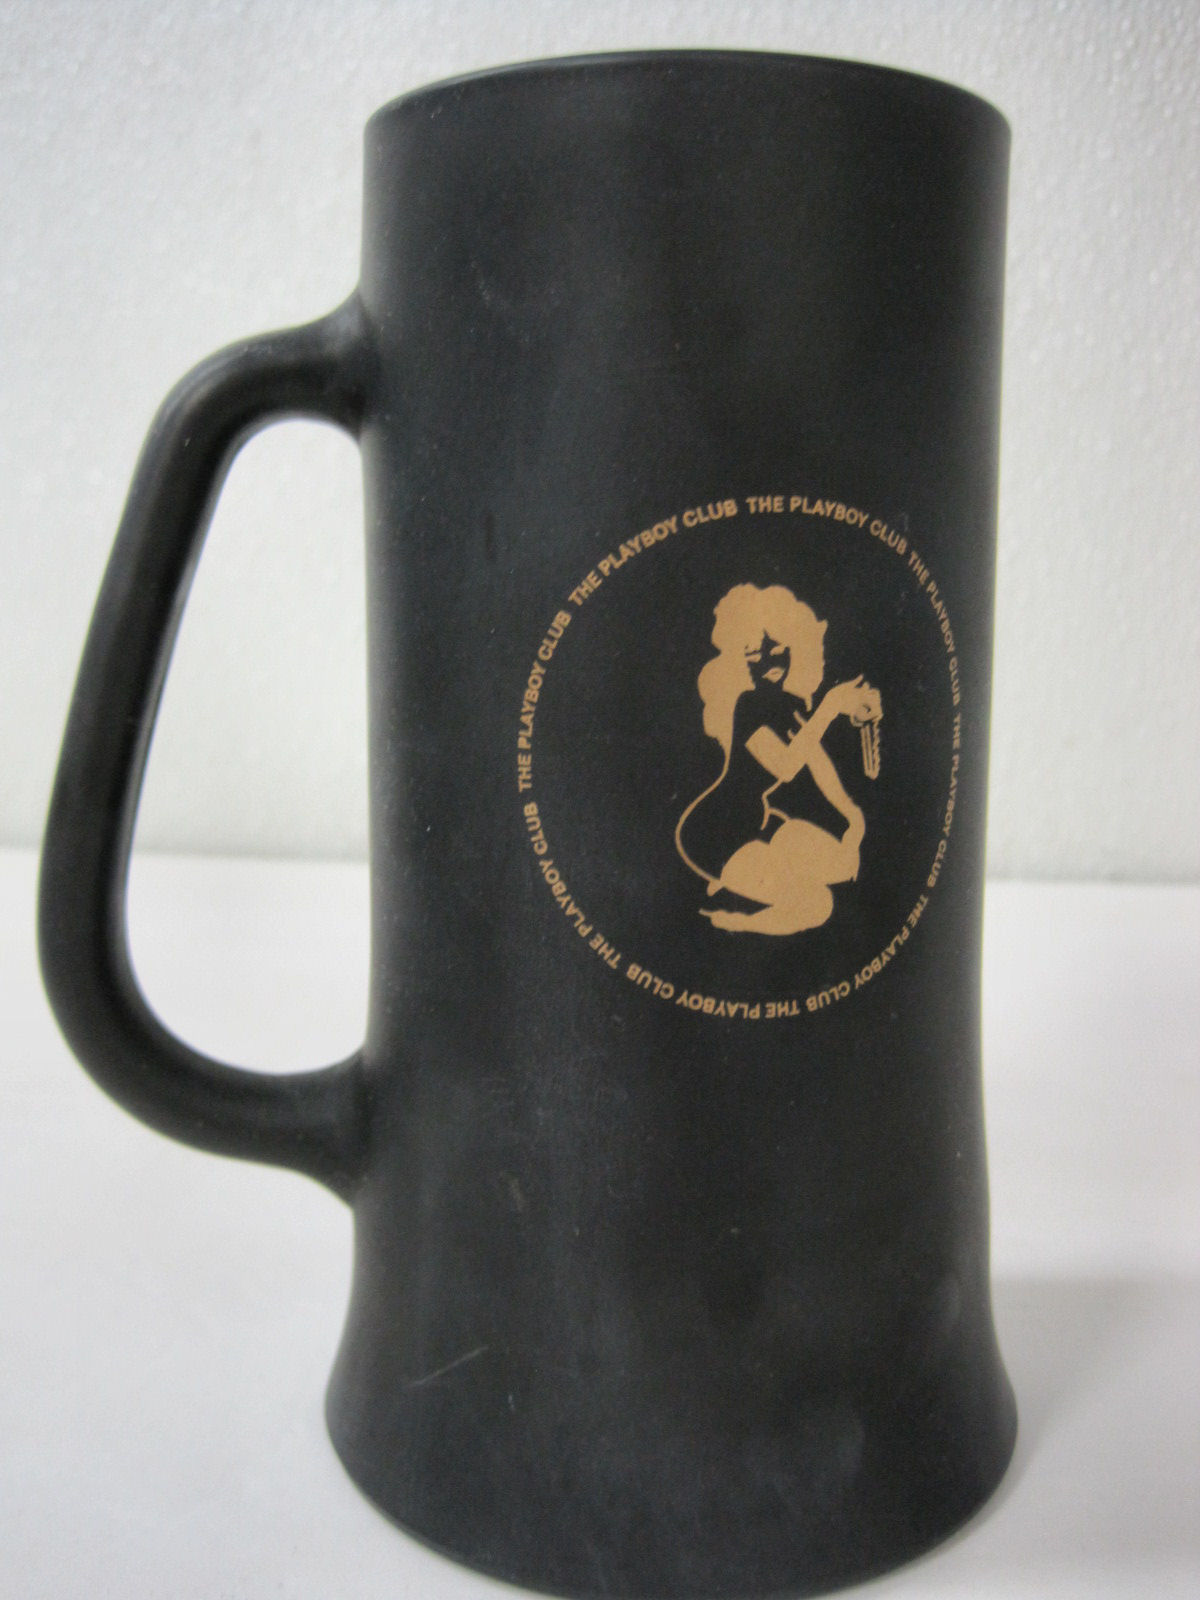 Playboy Bunny Club Key Glass Black Gold Beer Cup Mug Tanker 6 Inches Tall image 4